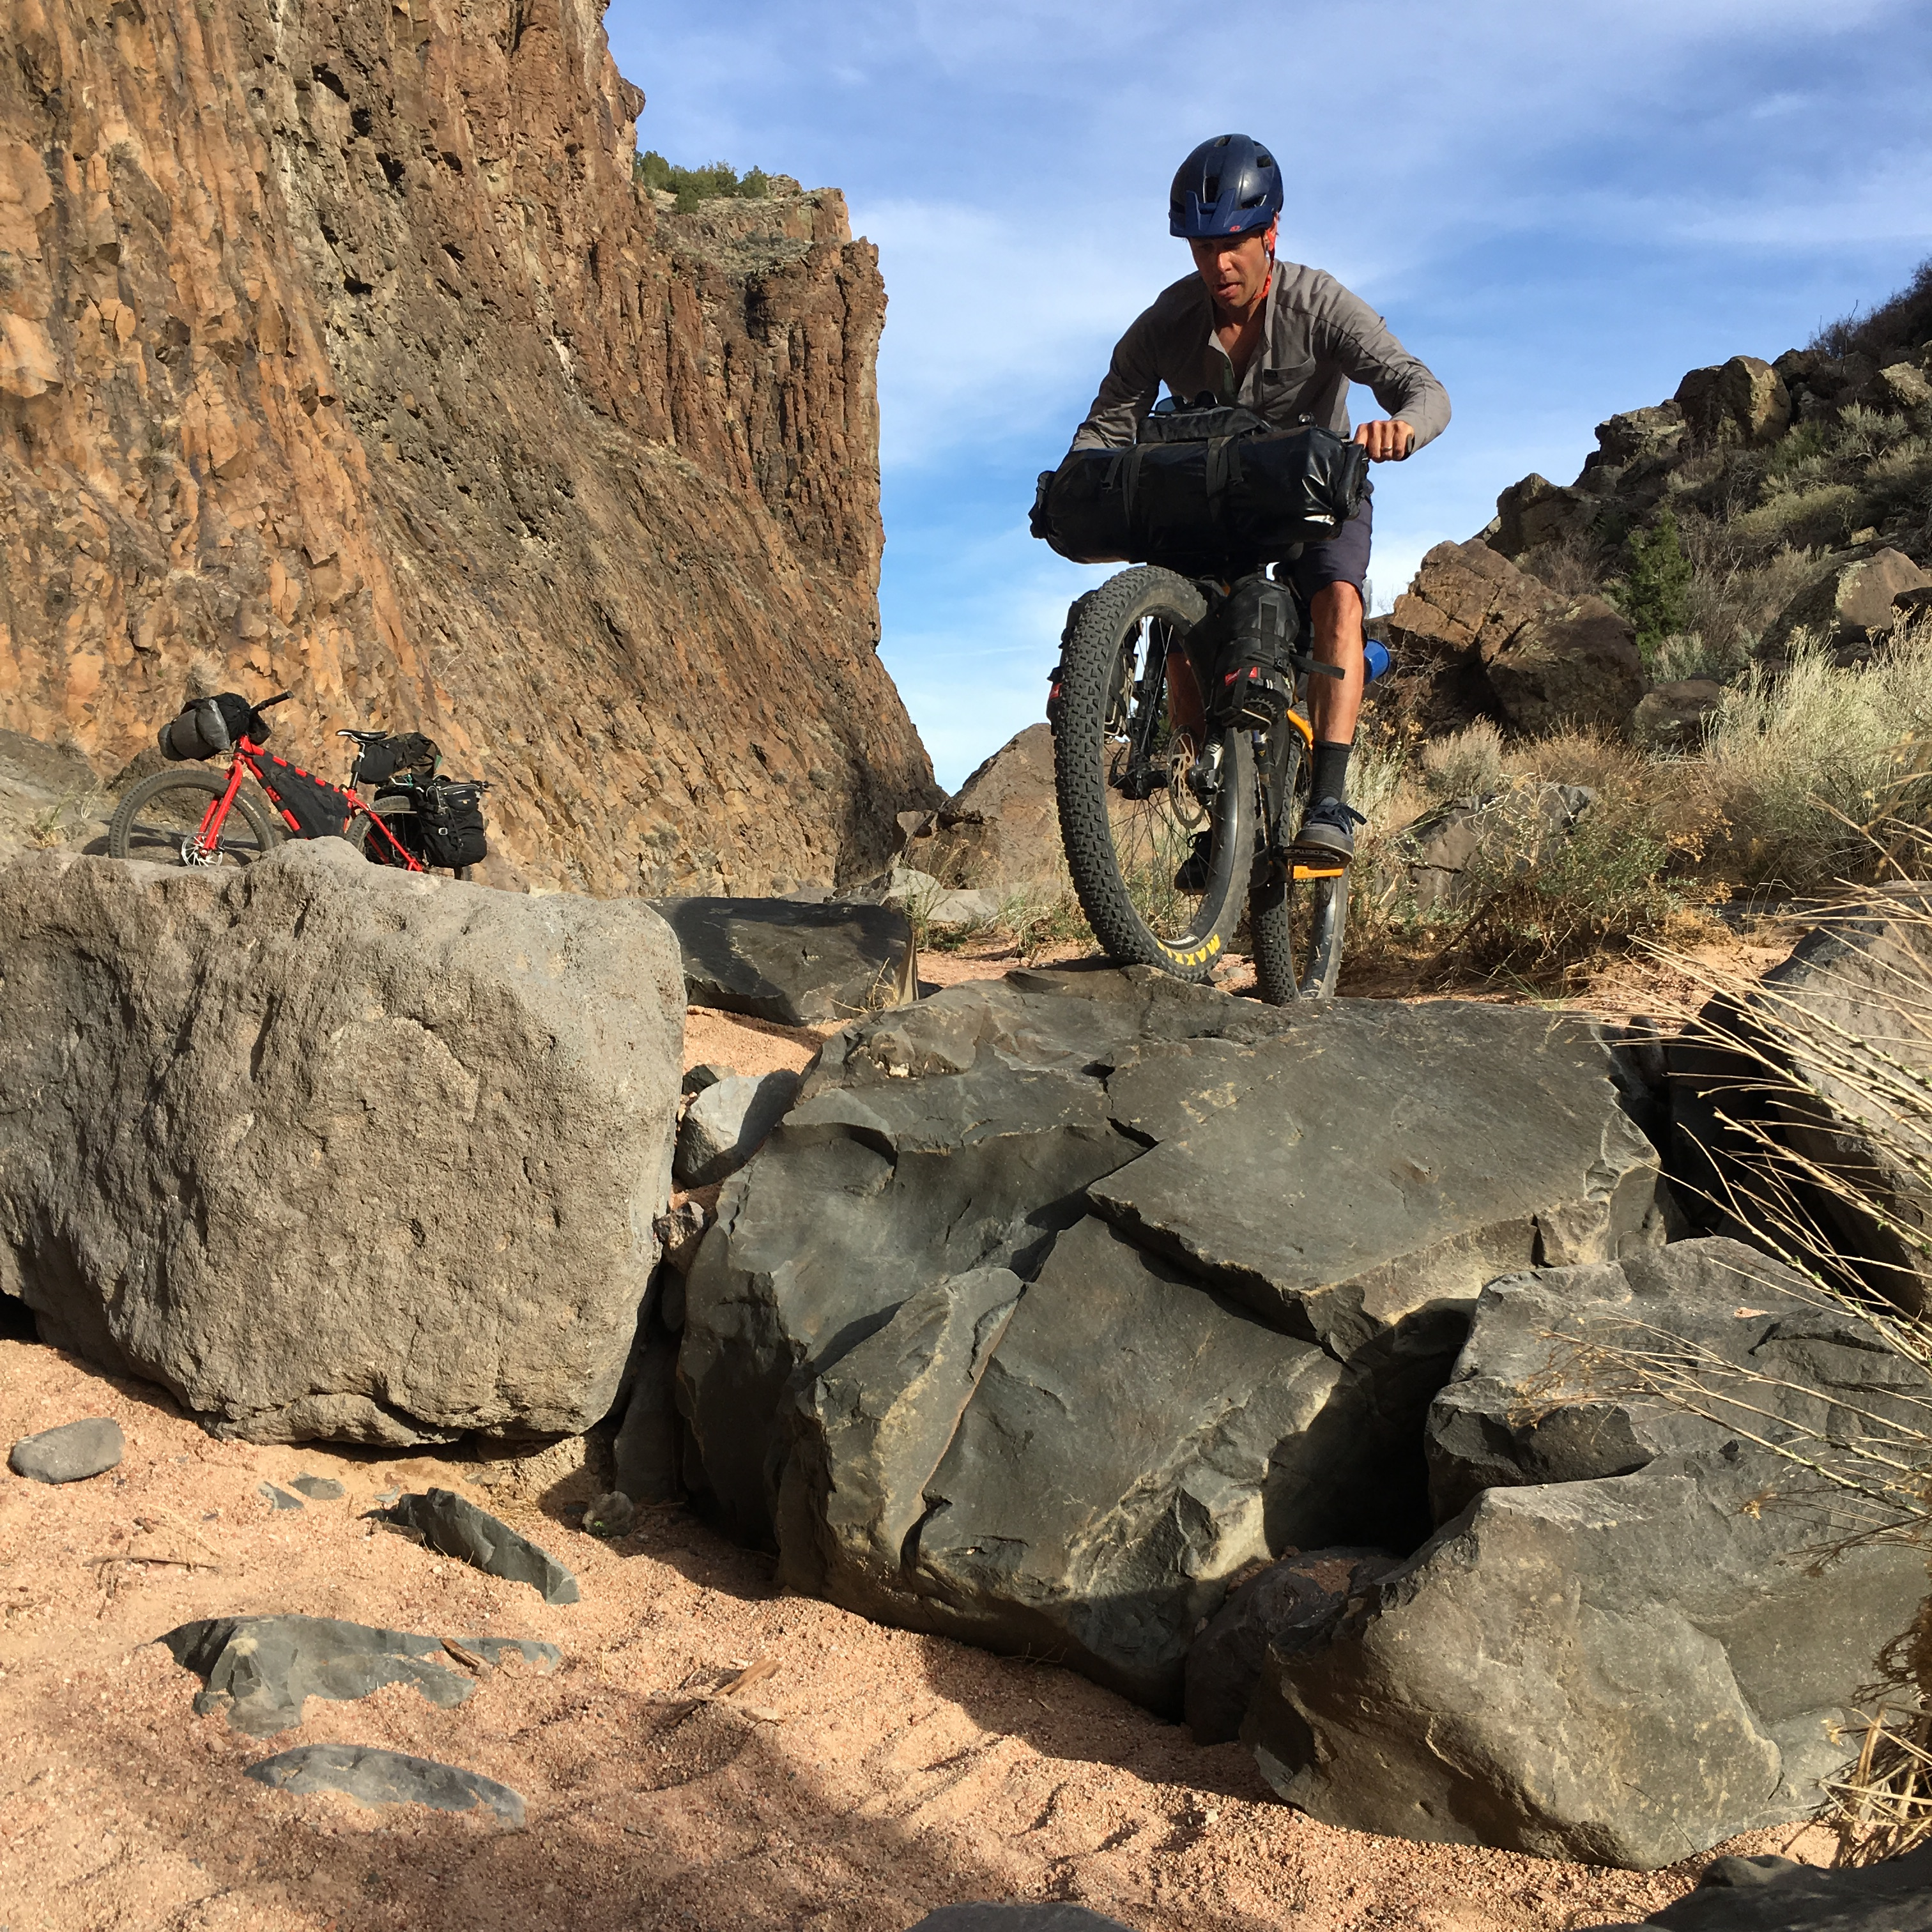 Front view of a cyclist riding on a rock in a desert canyon with riderless bike in the background